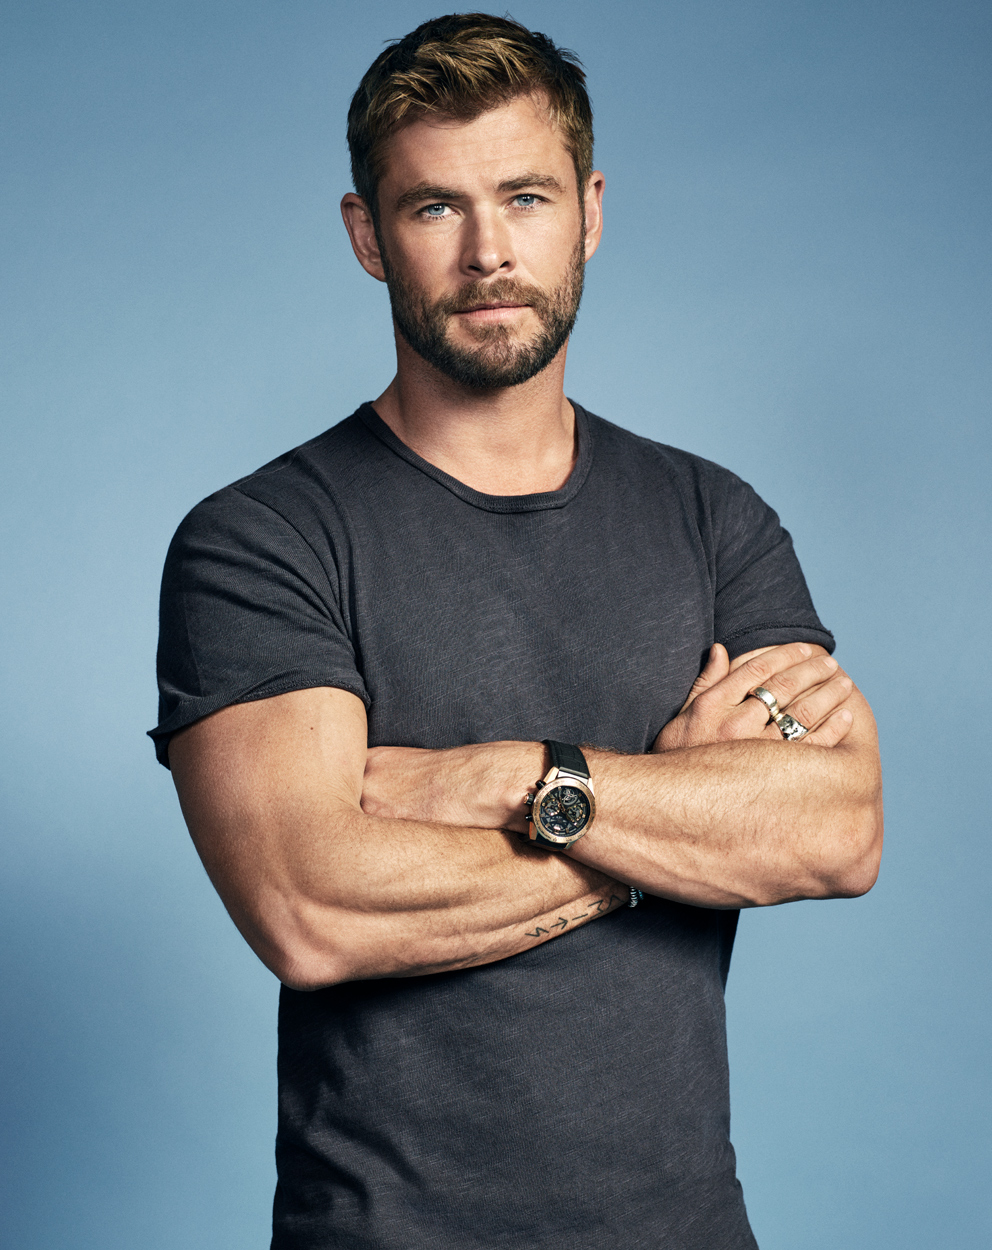 Celebrity Photographer Michael Schwartz: Chris Hemsworth for Men